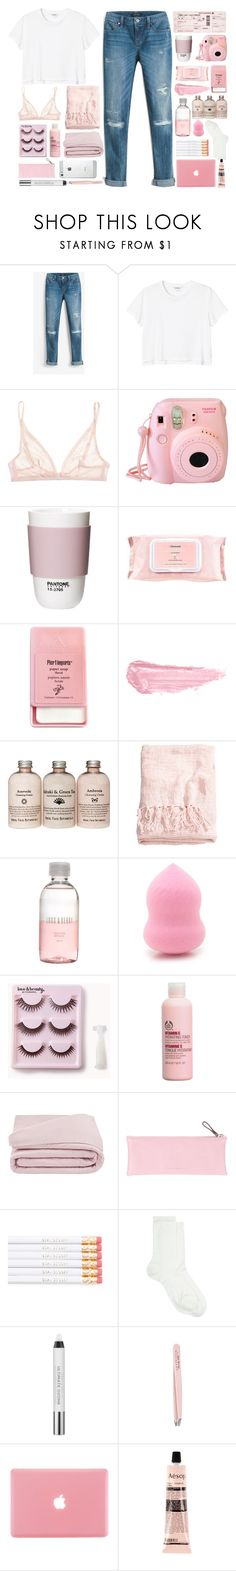 """""""☼; welcome to the land of fame excess"""" by a-perfect-messs ❤ liked on Polyvore featuring White House Black Market, Monki, Calvin Klein Underwear, Fujifilm, ROOM COPENHAGEN, Mamonde, Pier 1 Imports, By Terry, H&M and Lord & Berry"""